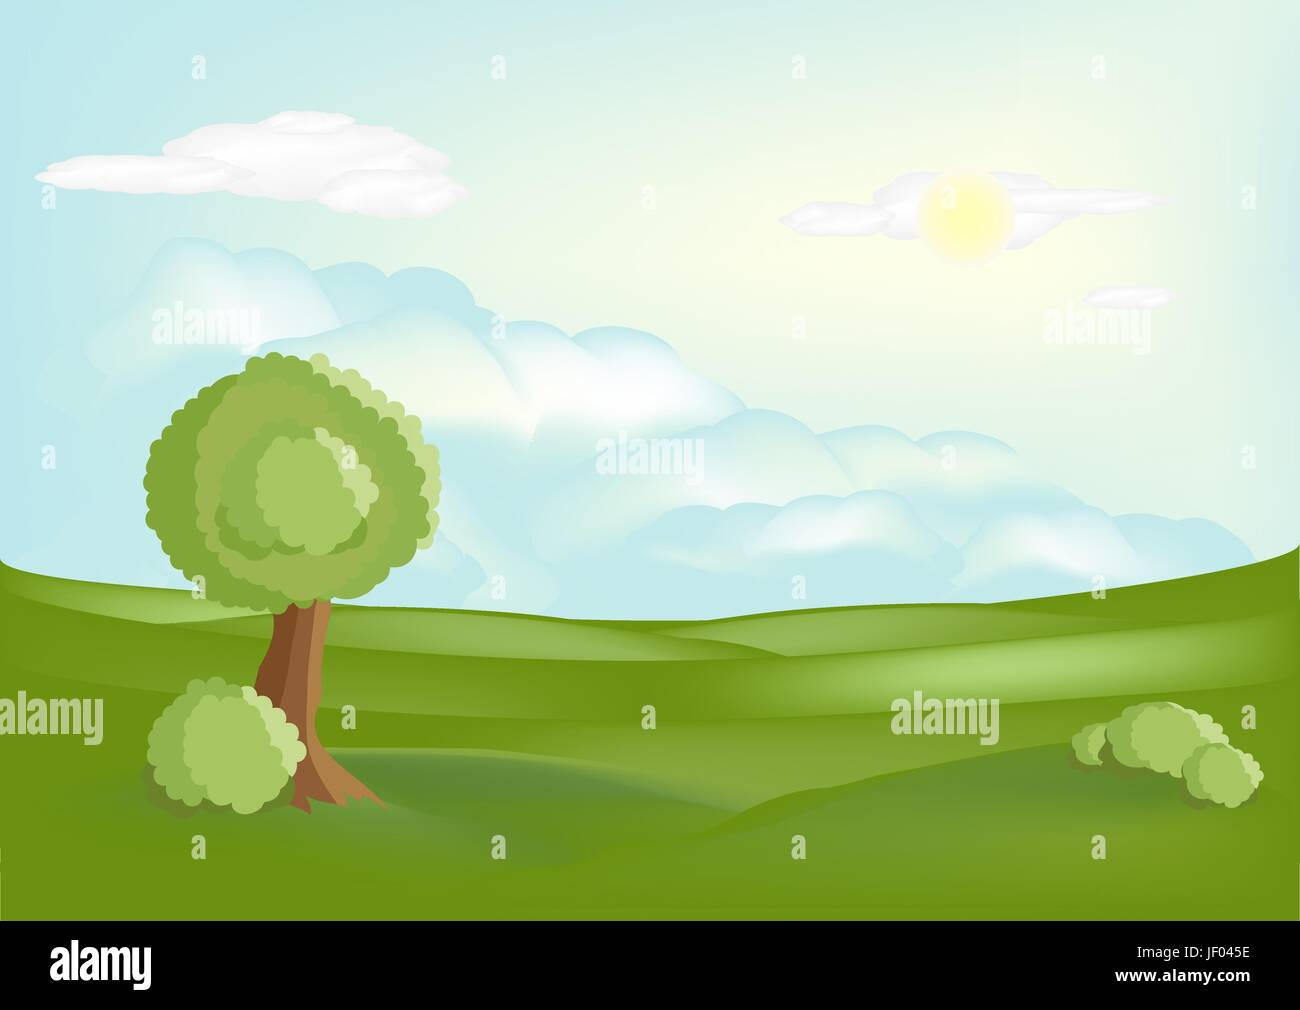 tree, field, summer, summerly, season, landscape, scenery, countryside, nature, - Stock Vector